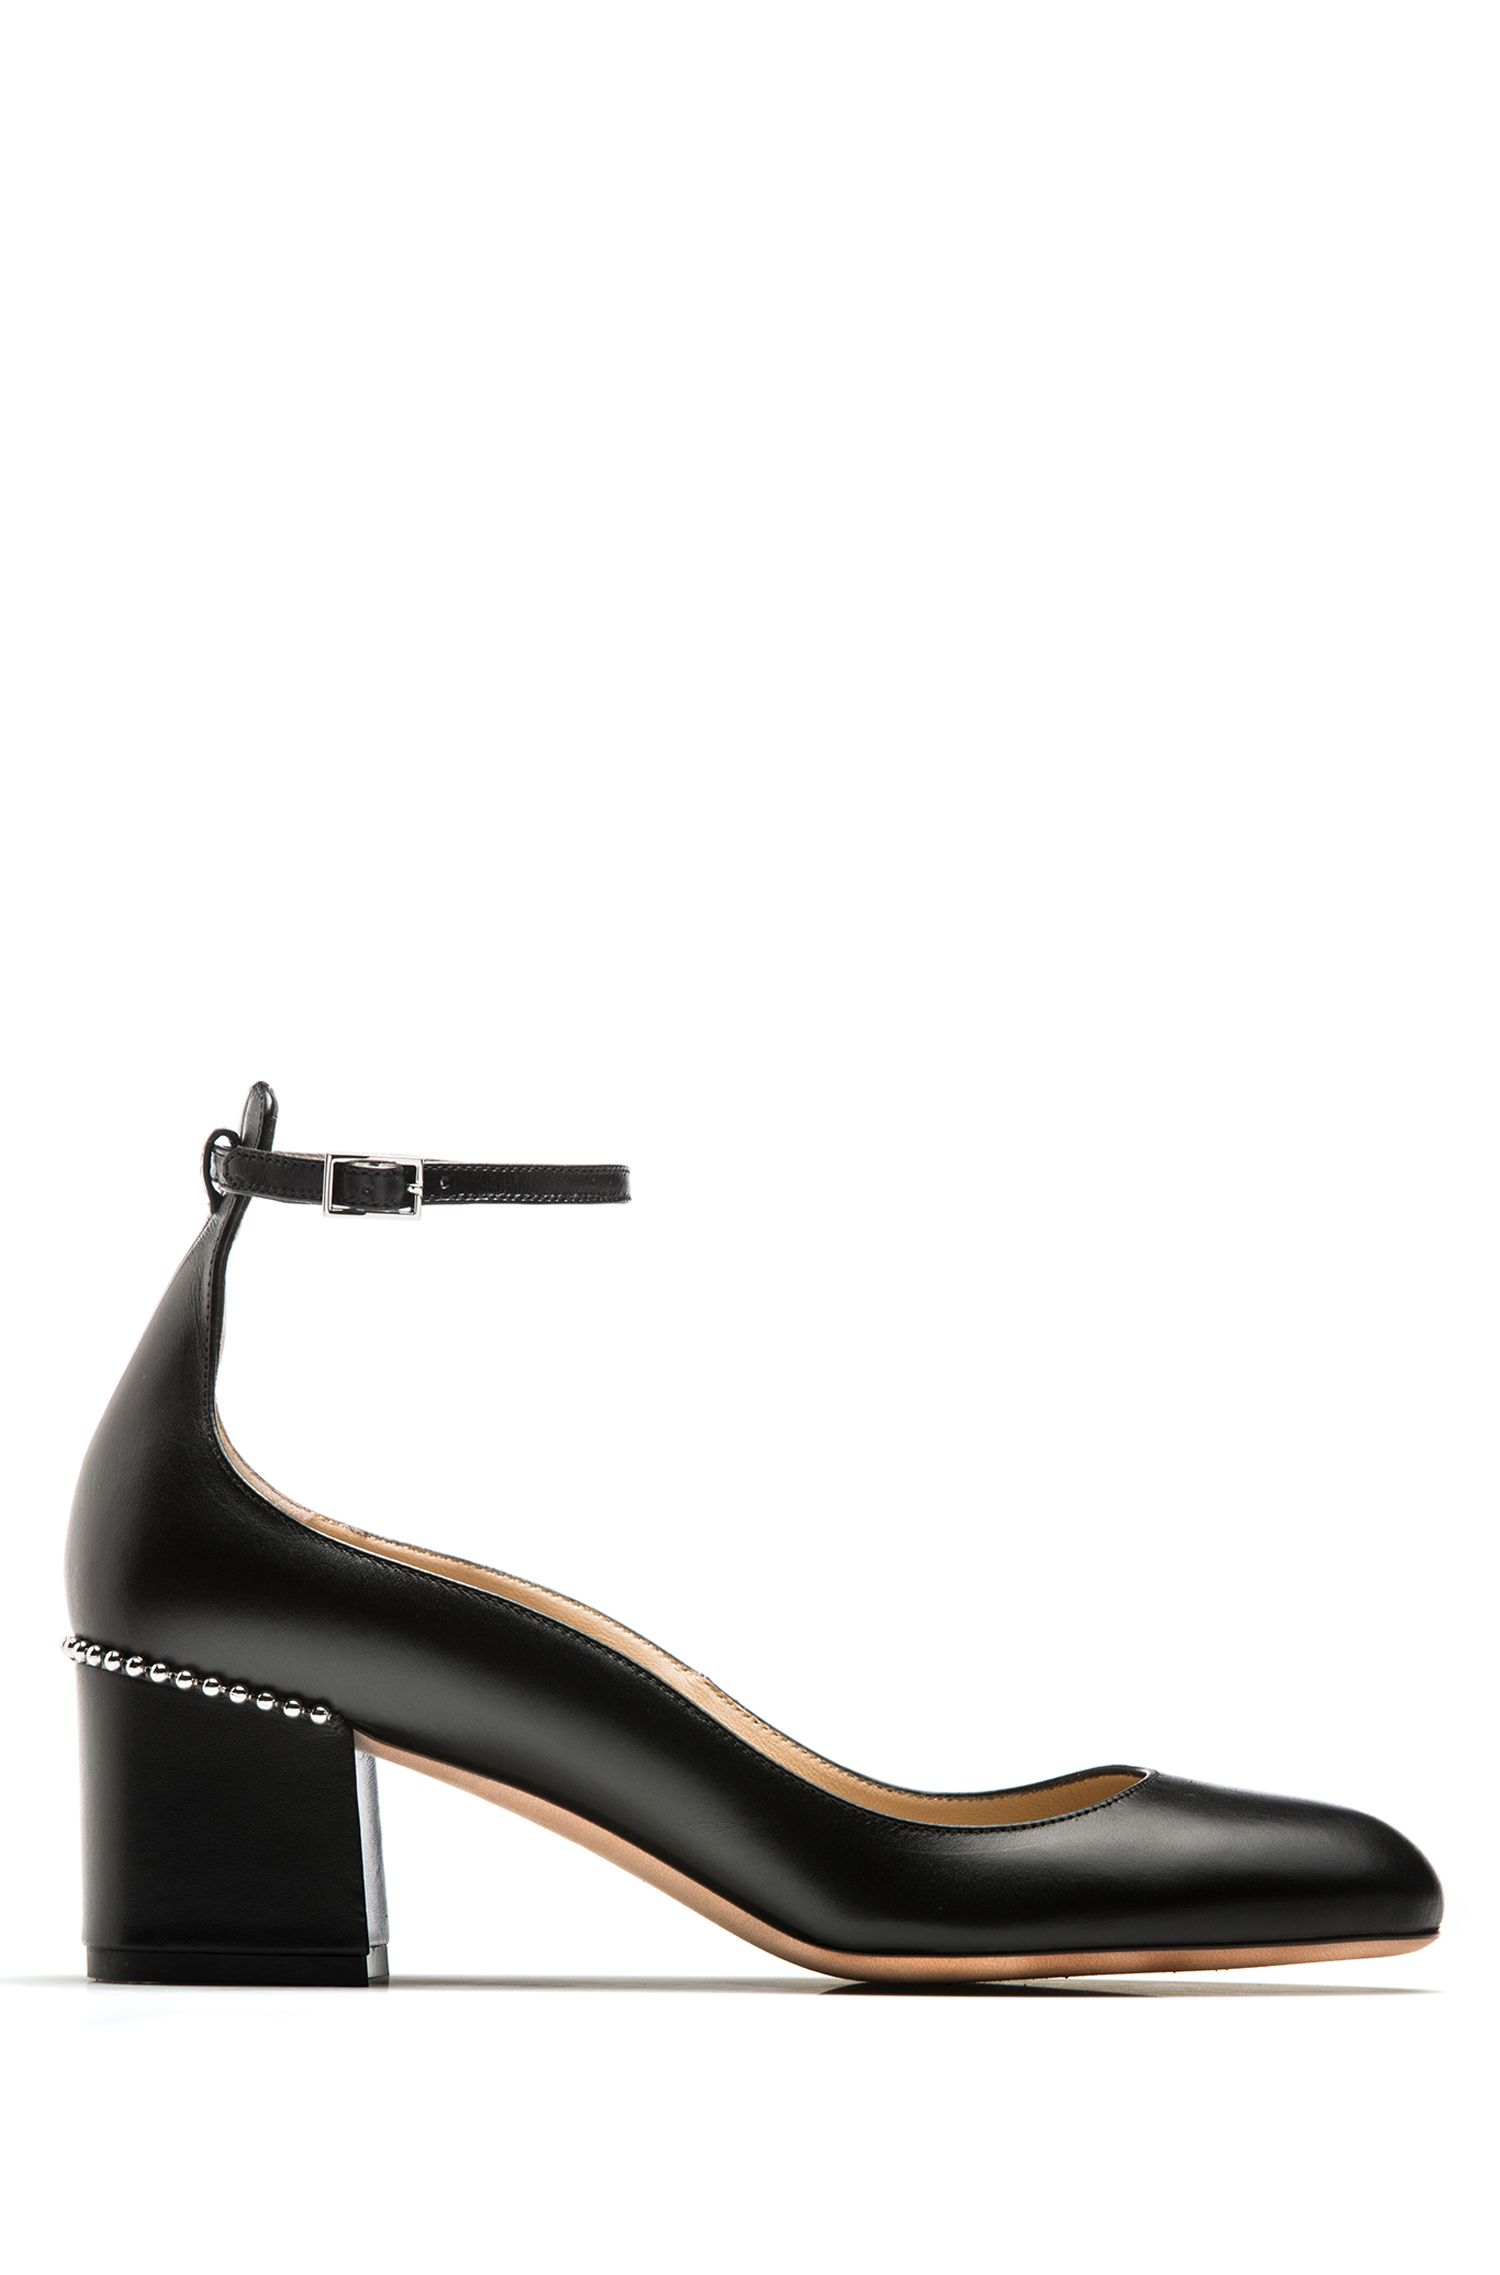 Calf-leather pumps with ankle strap and studs